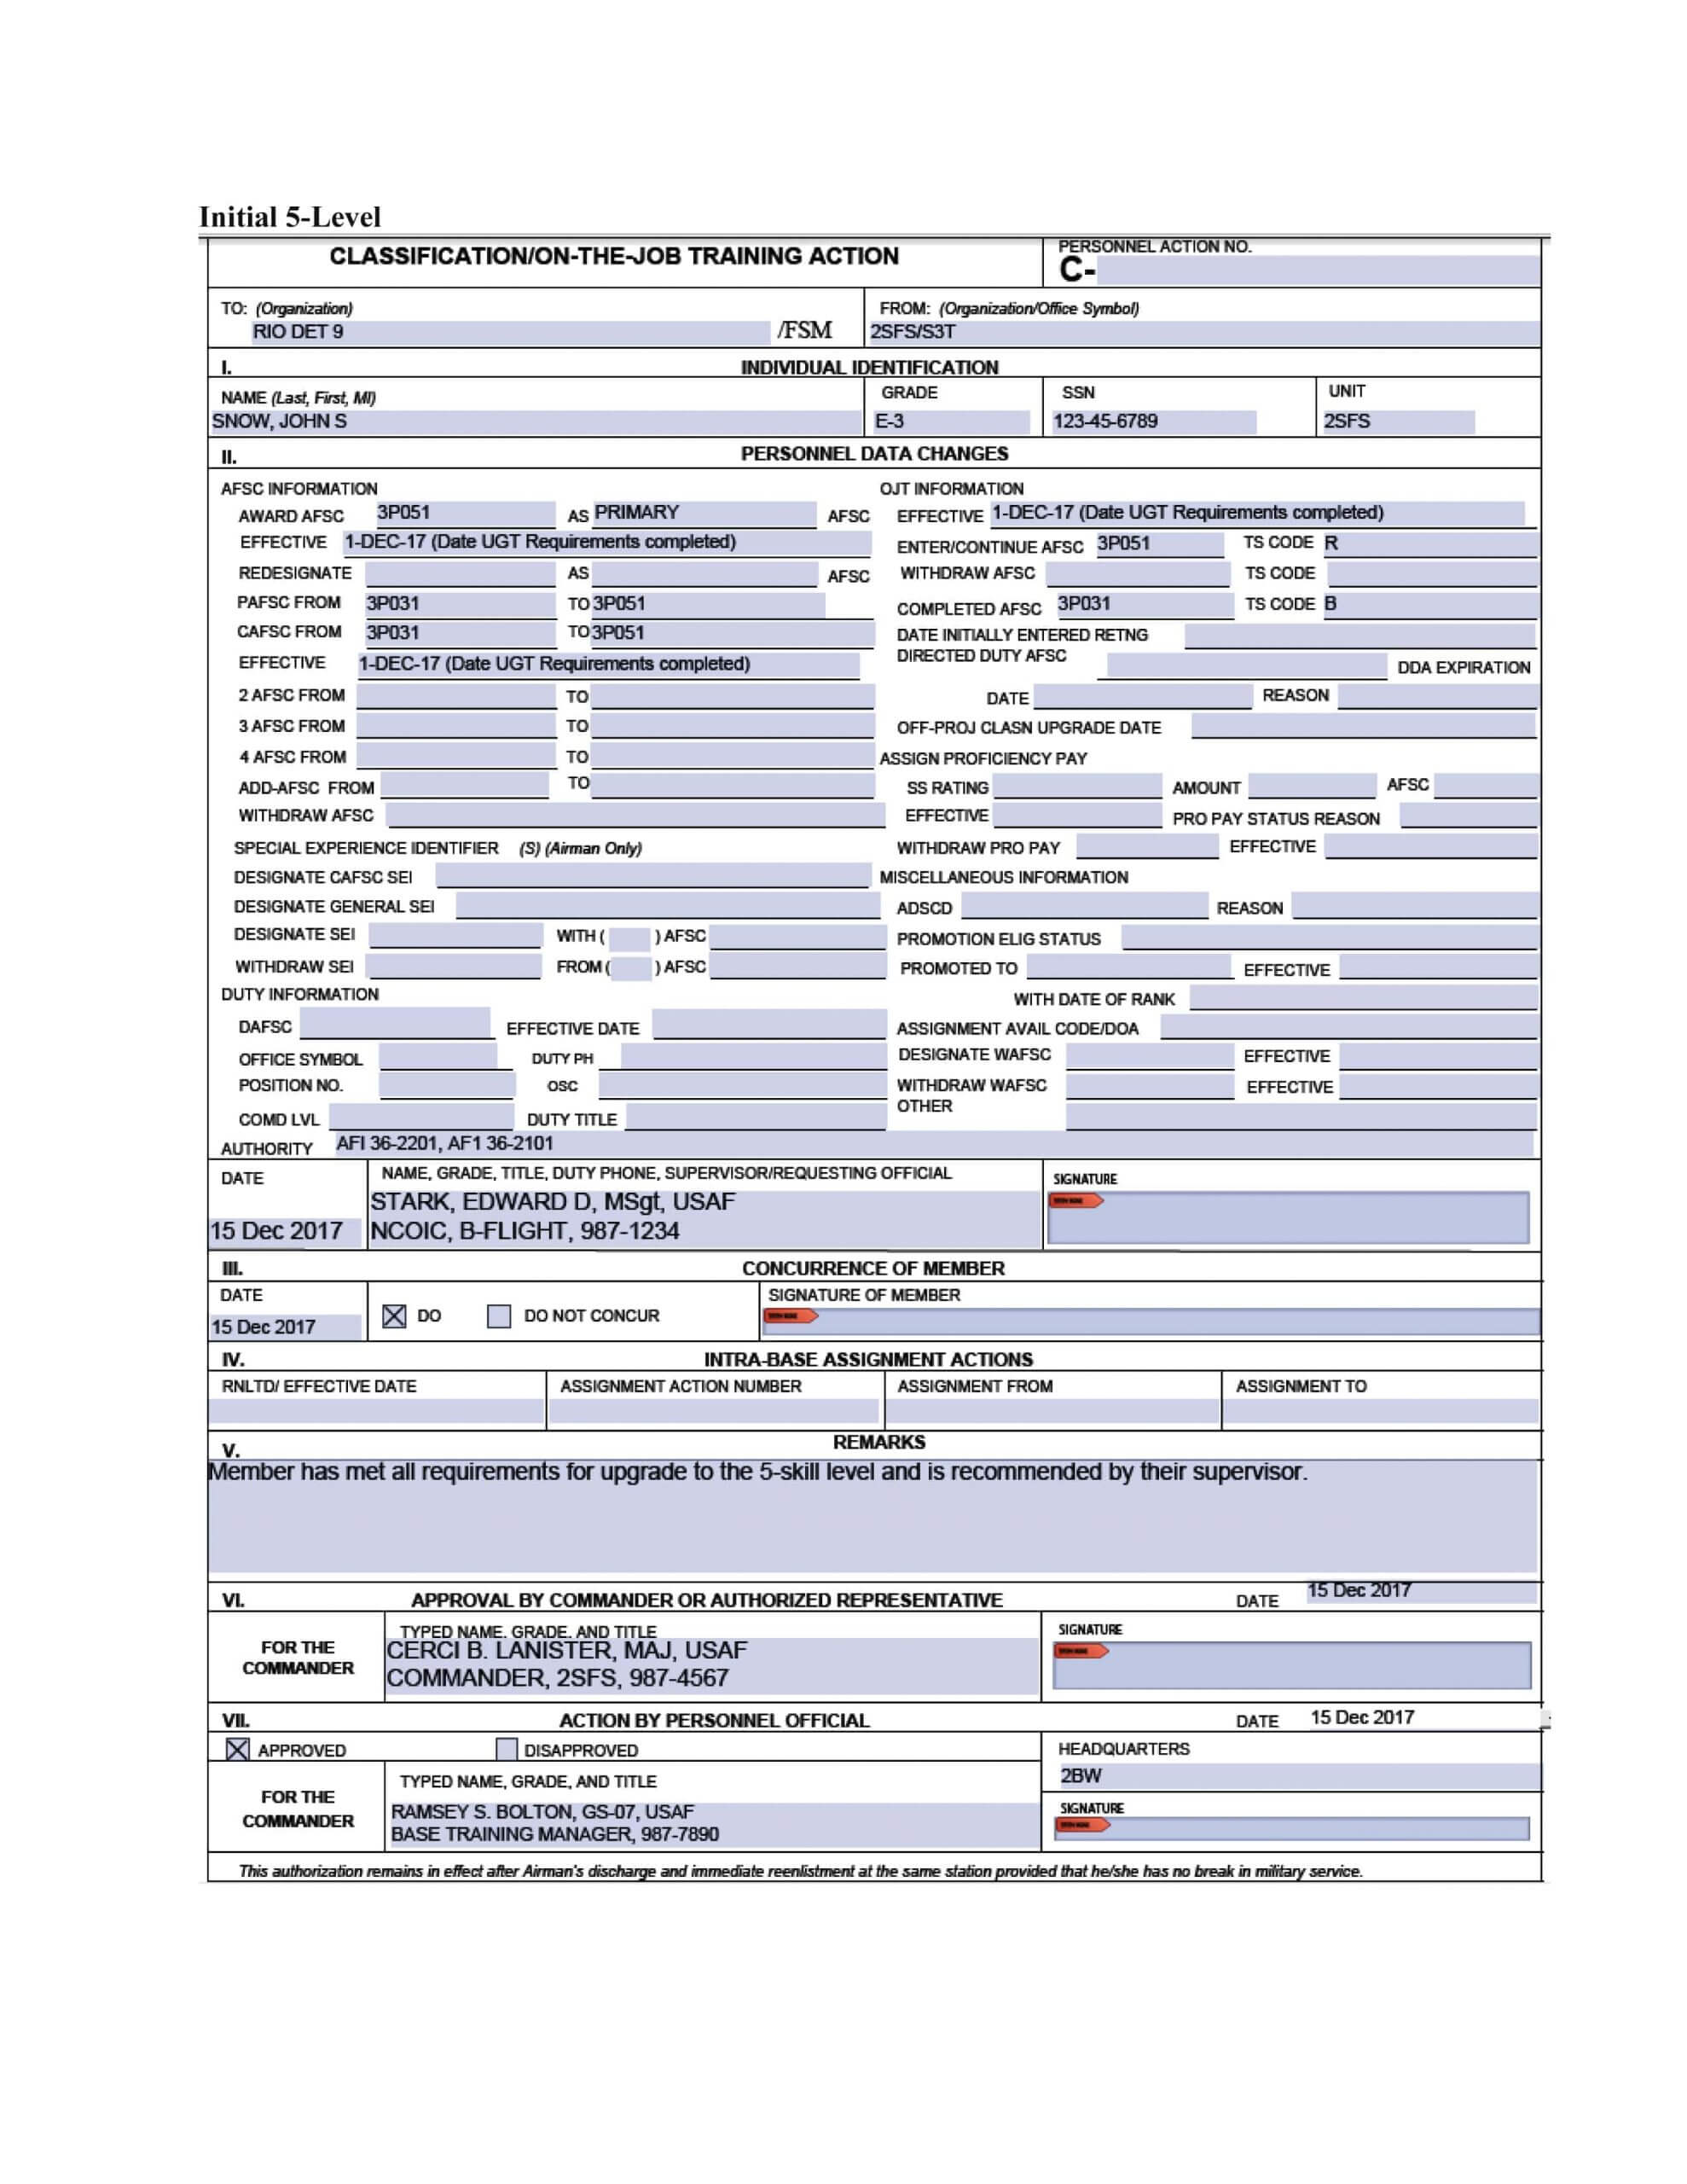 photo af form 2096 example